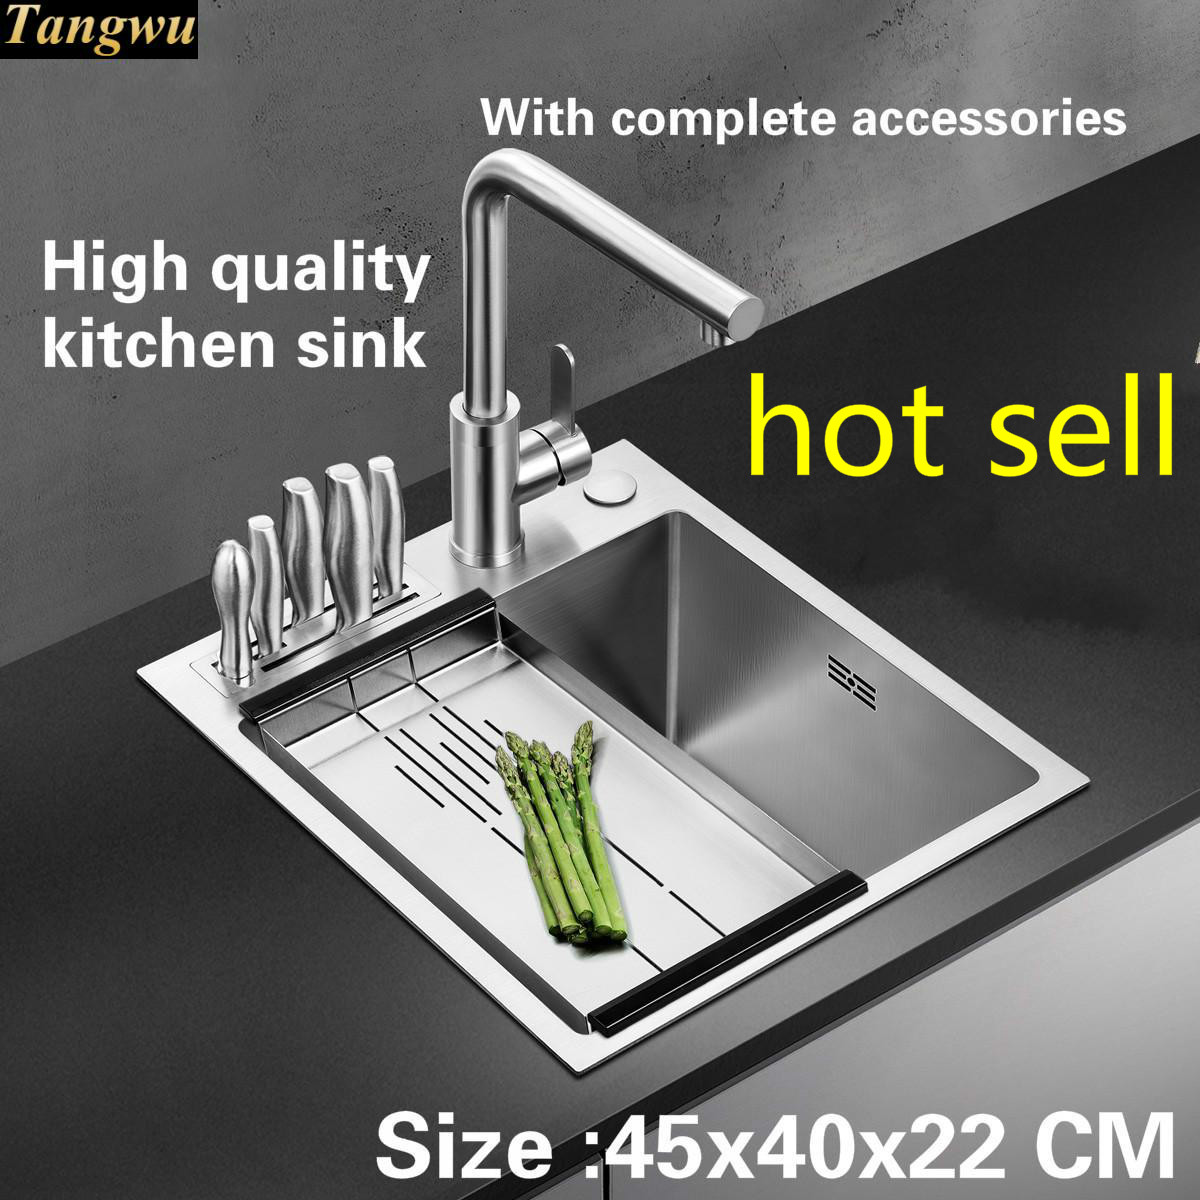 Tangwu Apartment High Quality Food Grade 304 Stainless Steel Kitchen Sink Thick Balcony Small Single Slot Handmade 45x40 CM